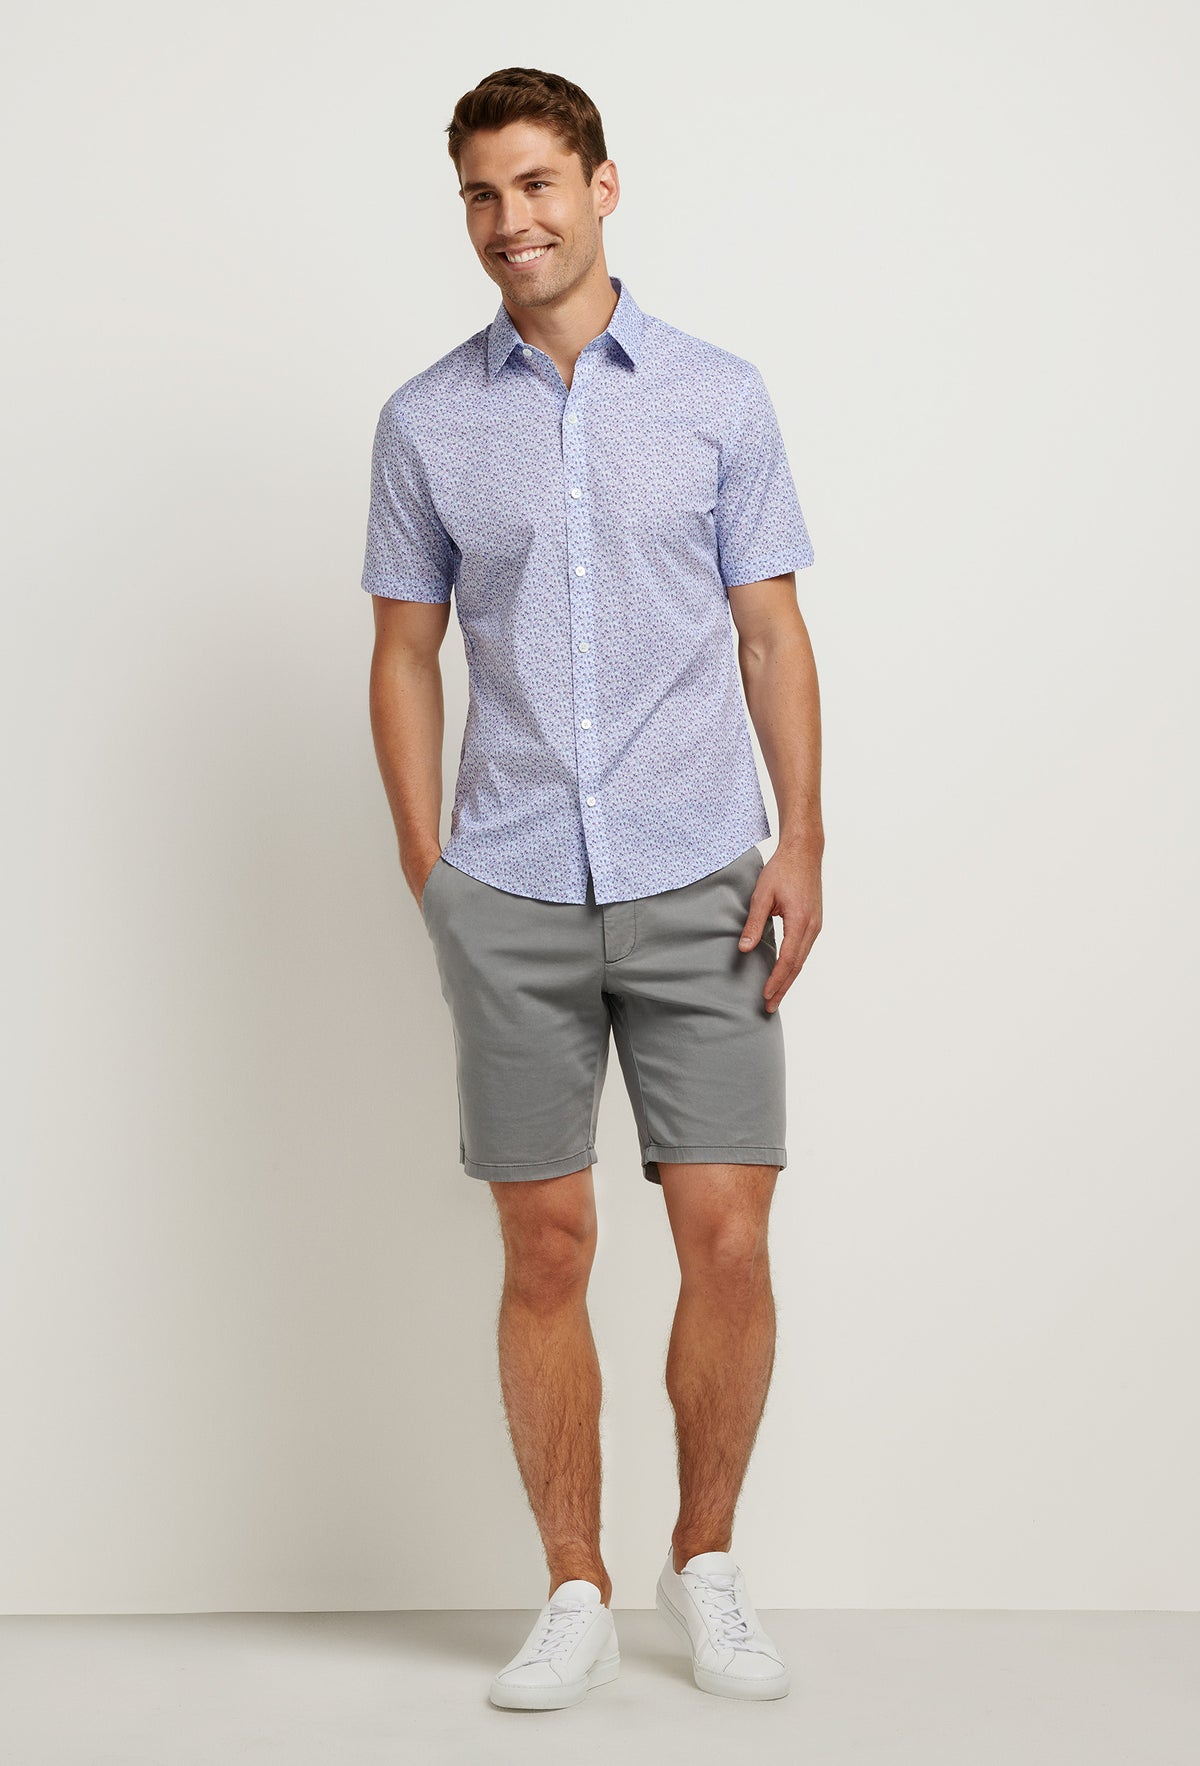 ZACHARY-PRELL-Shaia-ShirtsModern-Menswear-New-Dress-Code